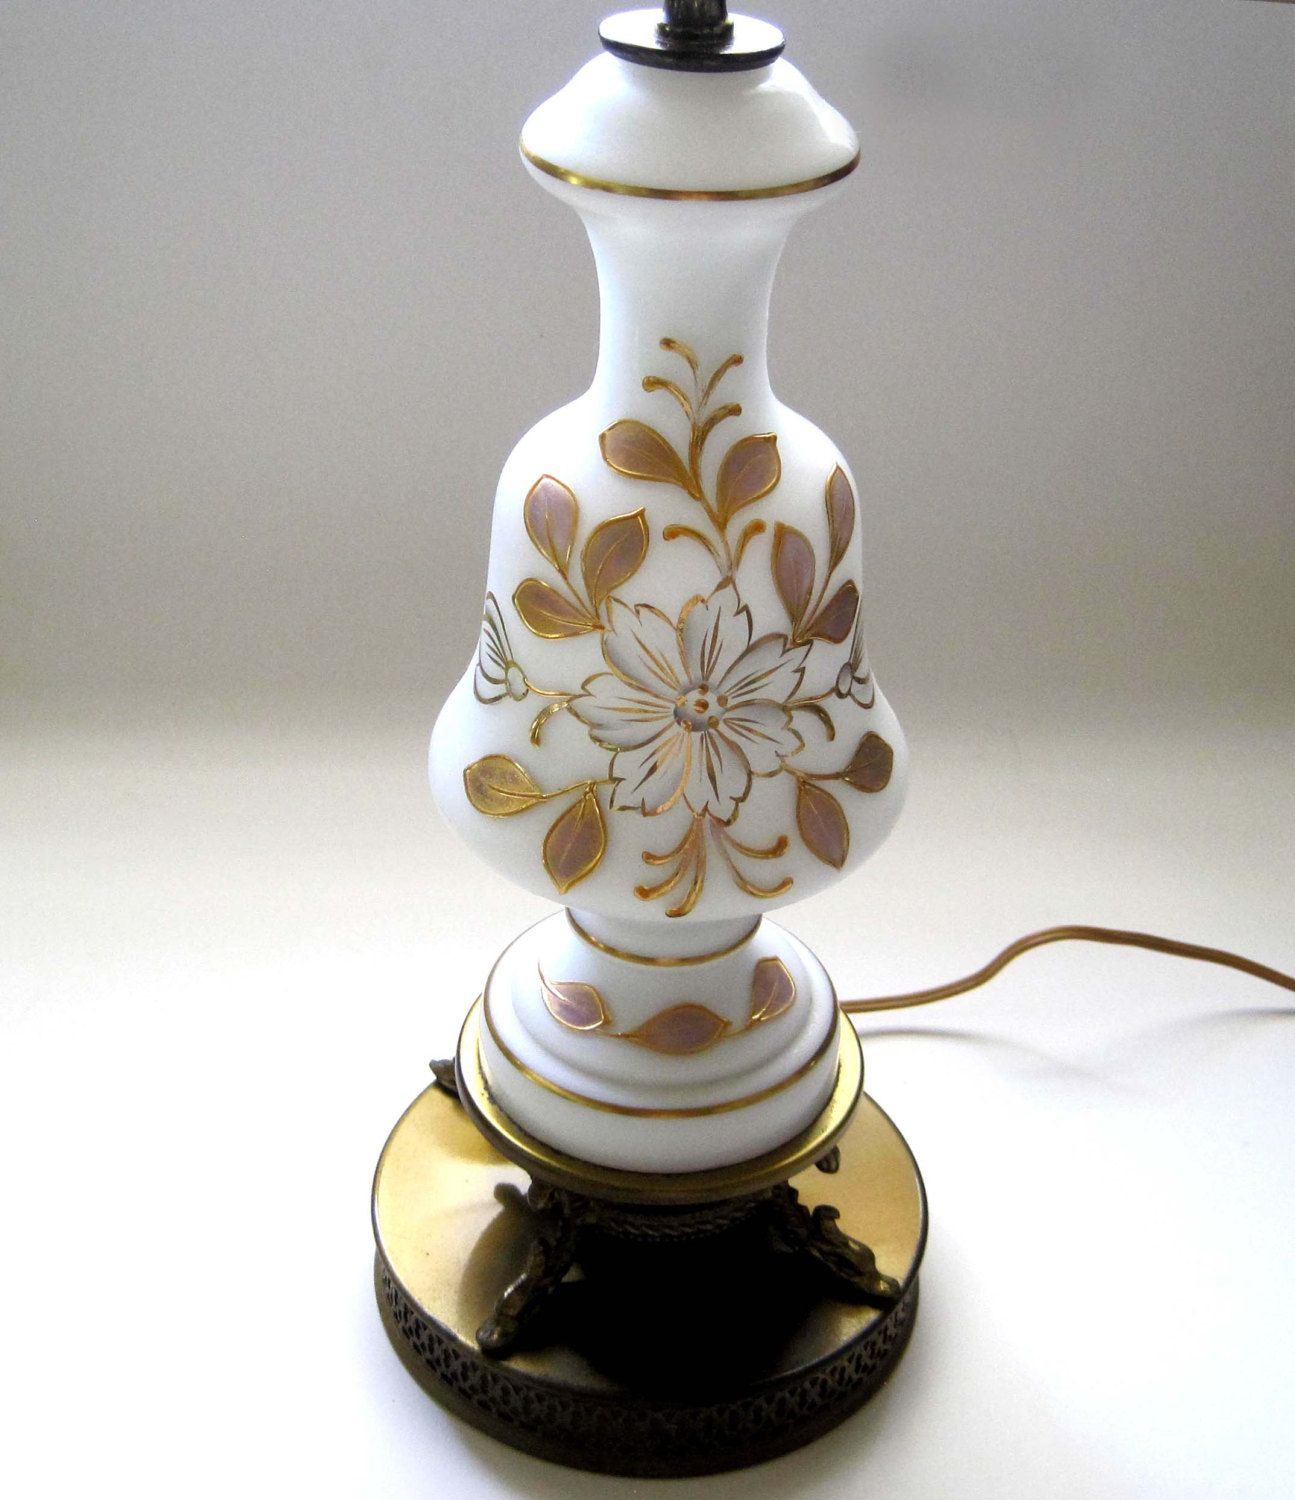 Vintage Ceramic Lamp Mid Century White and Gold 1960s Table Lighting